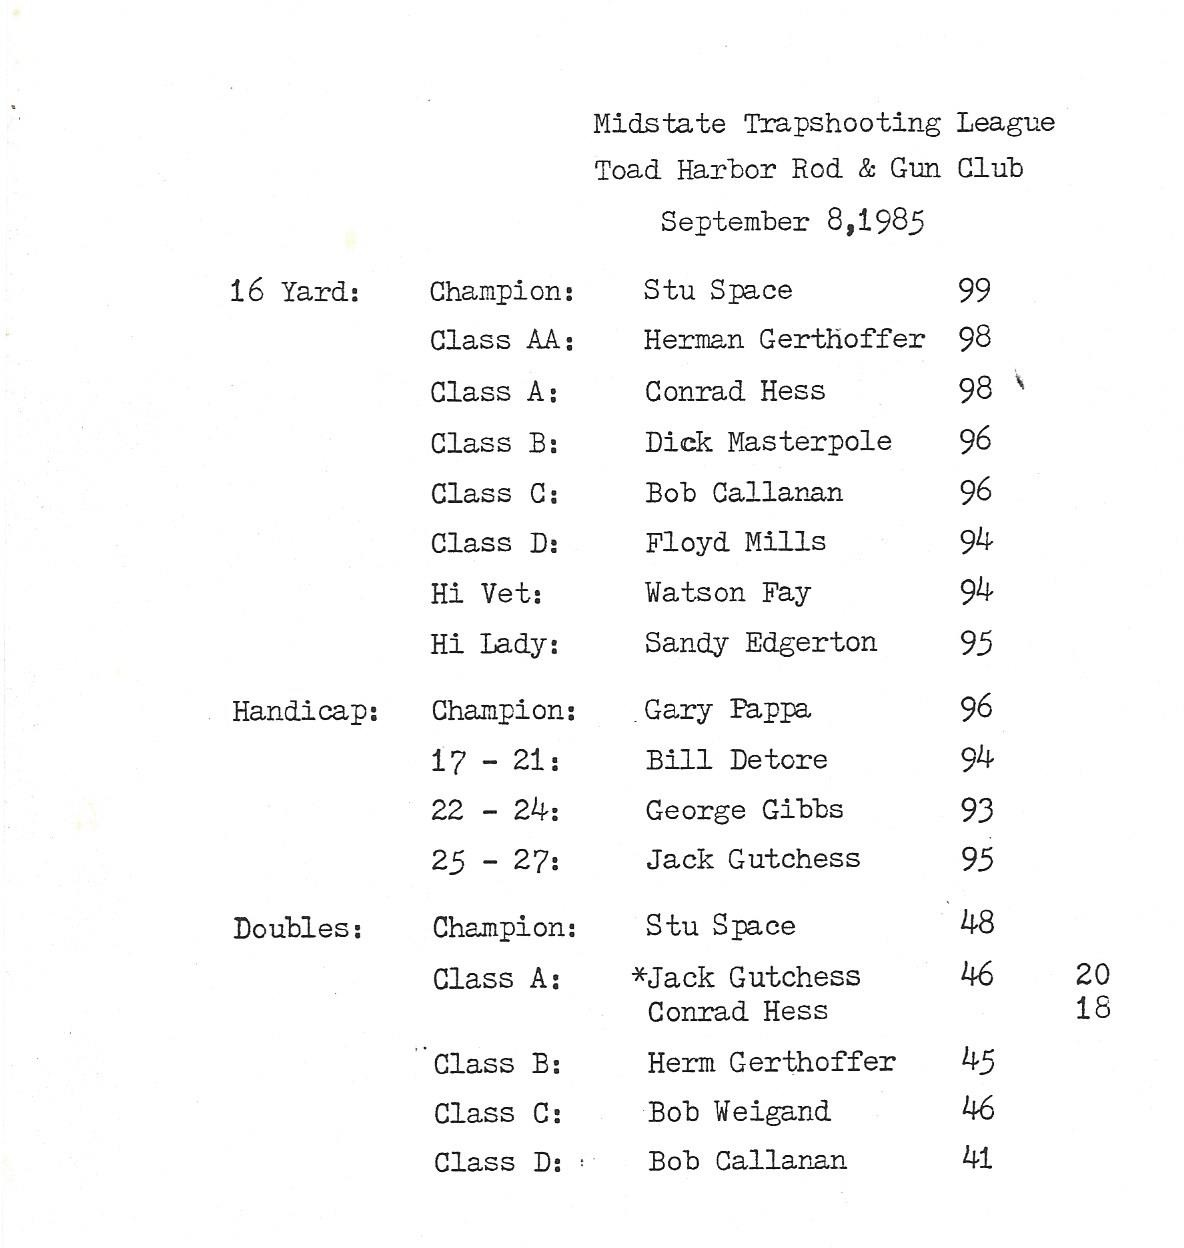 1985 Midstate 0908 winner list